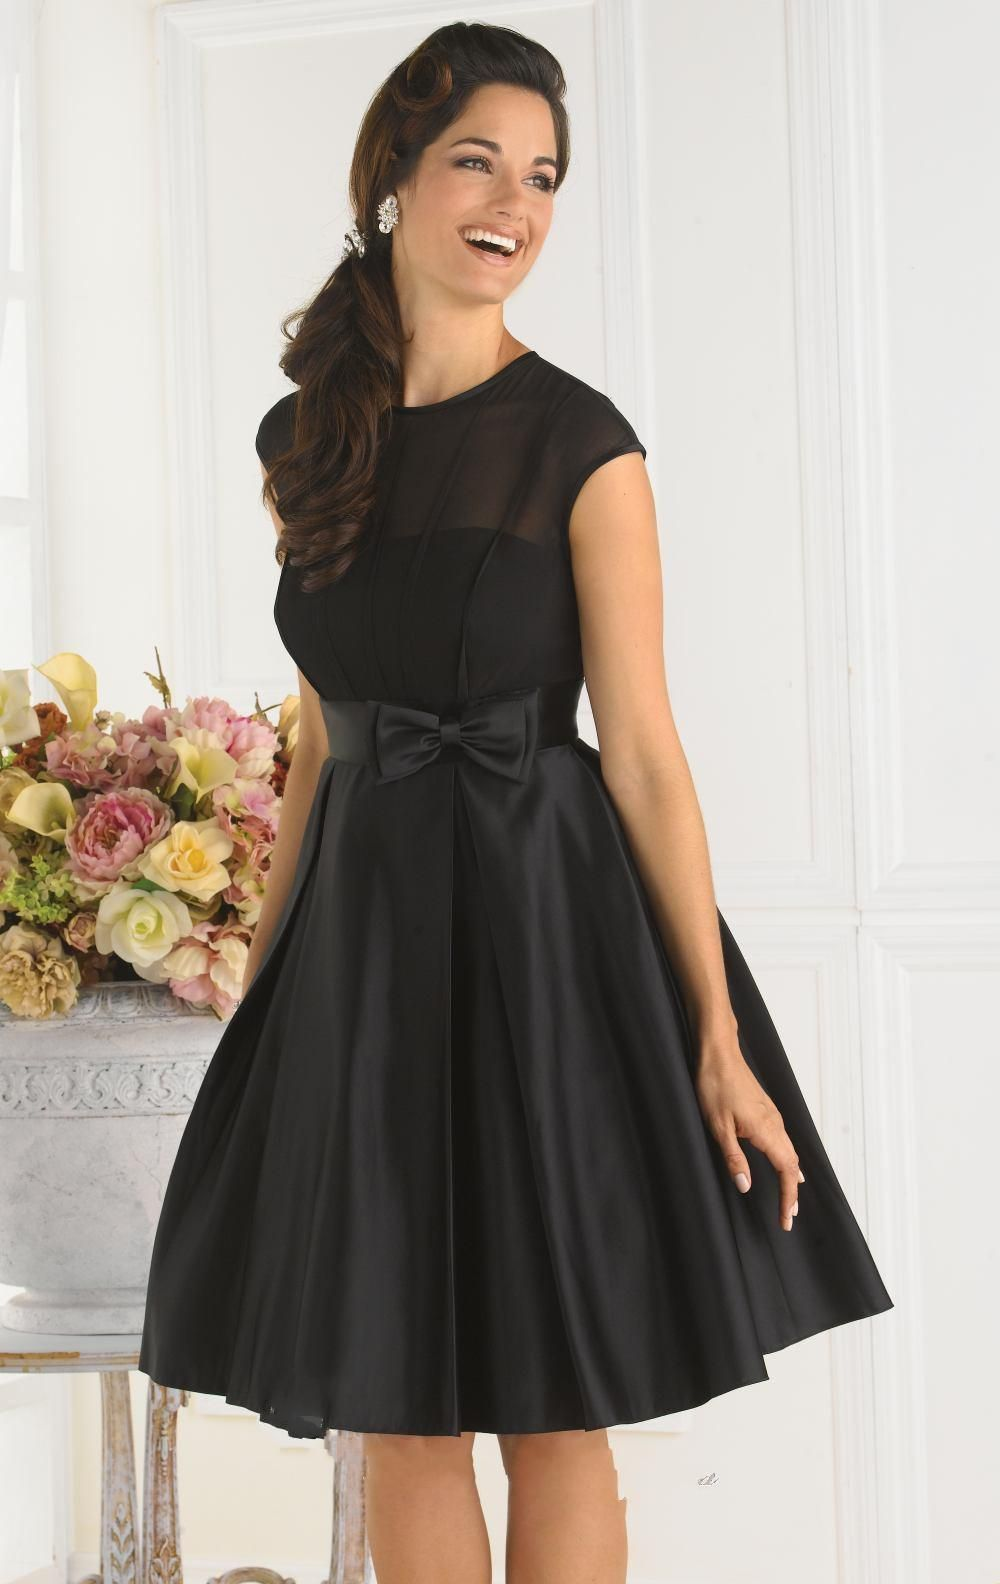 black cocktail dresses - Buscar con Google